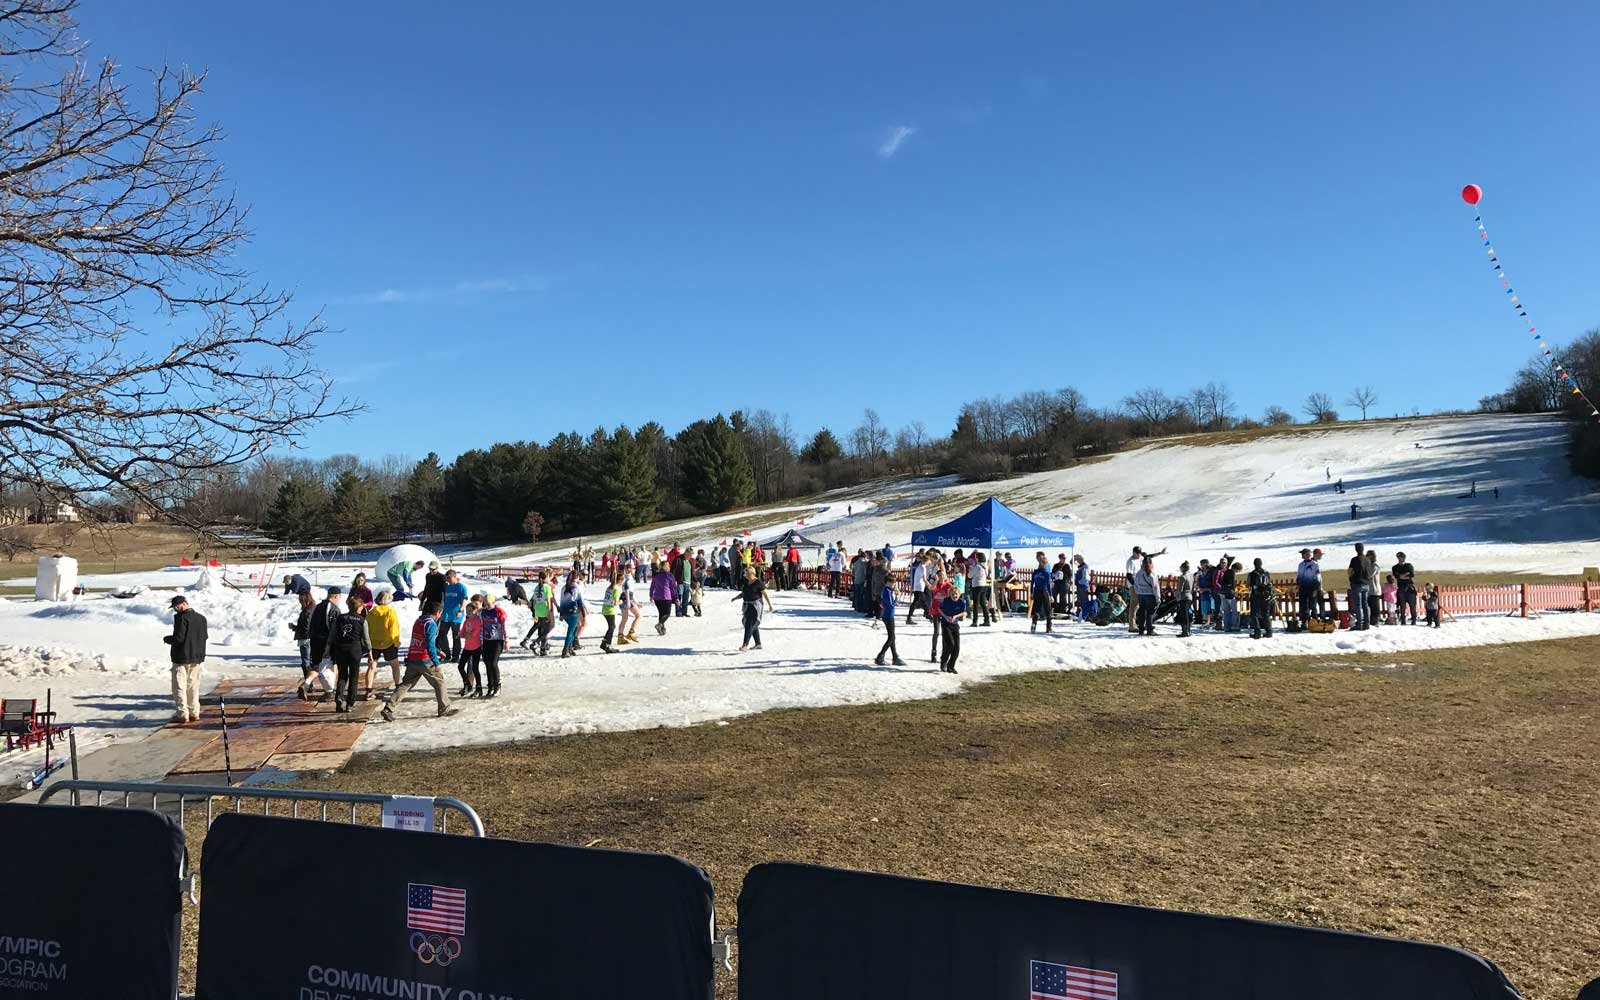 Madison Winter Festival Features Only >> Best Winter Festivals In The U S Travel Leisure